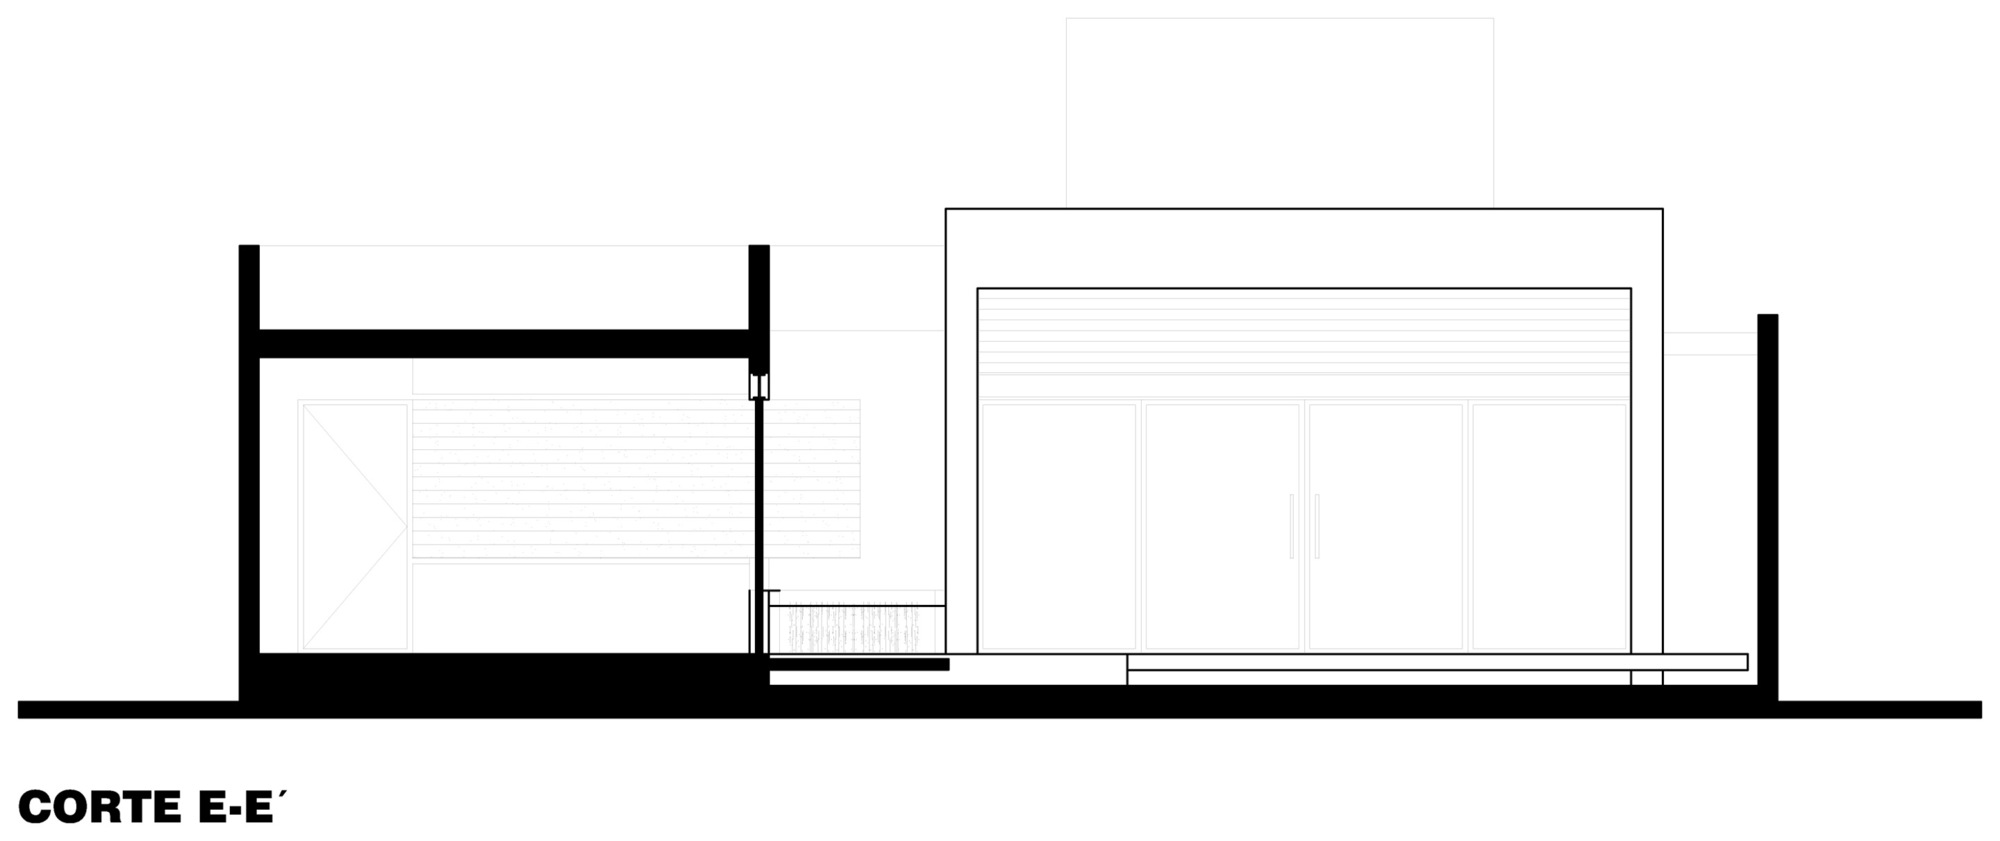 Gallery of t02 adi arquitectura y dise o interior 36 for Arquitectura y diseno interior